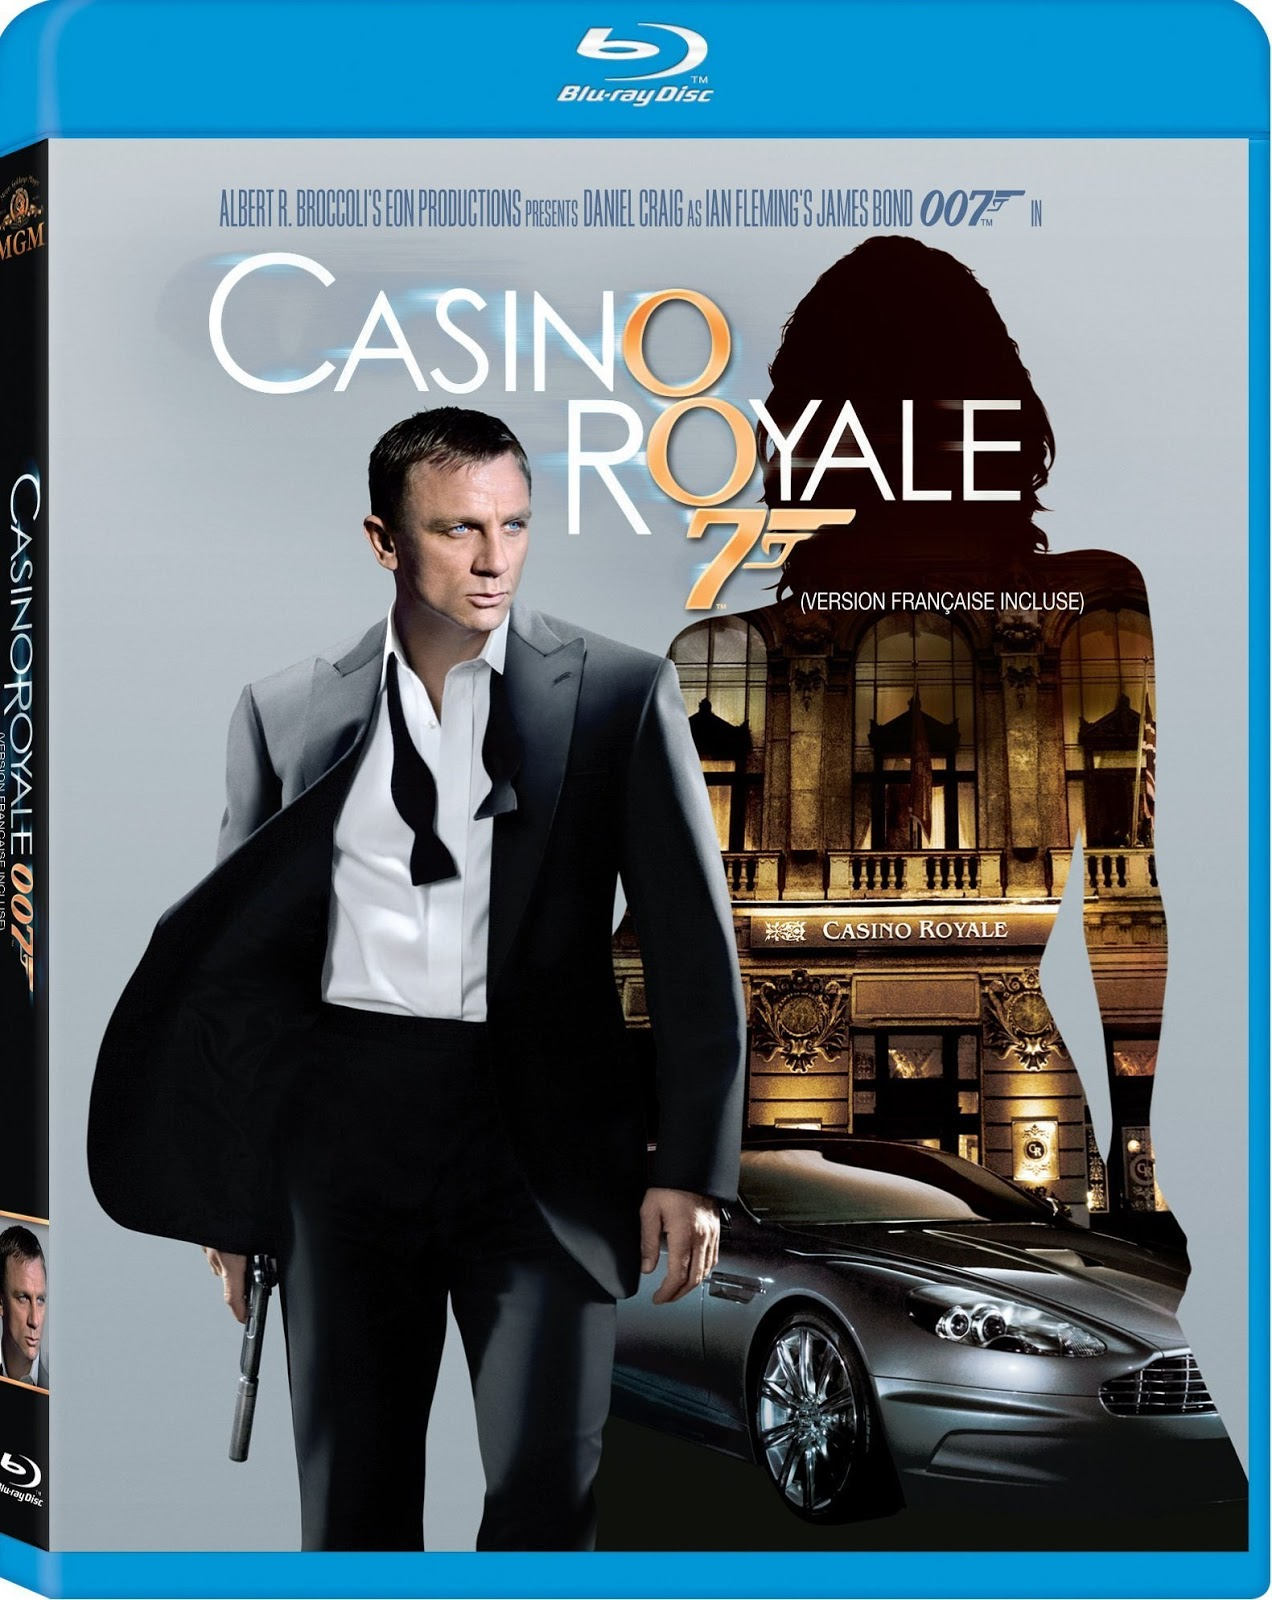 casino royale movie download in hindi 480p